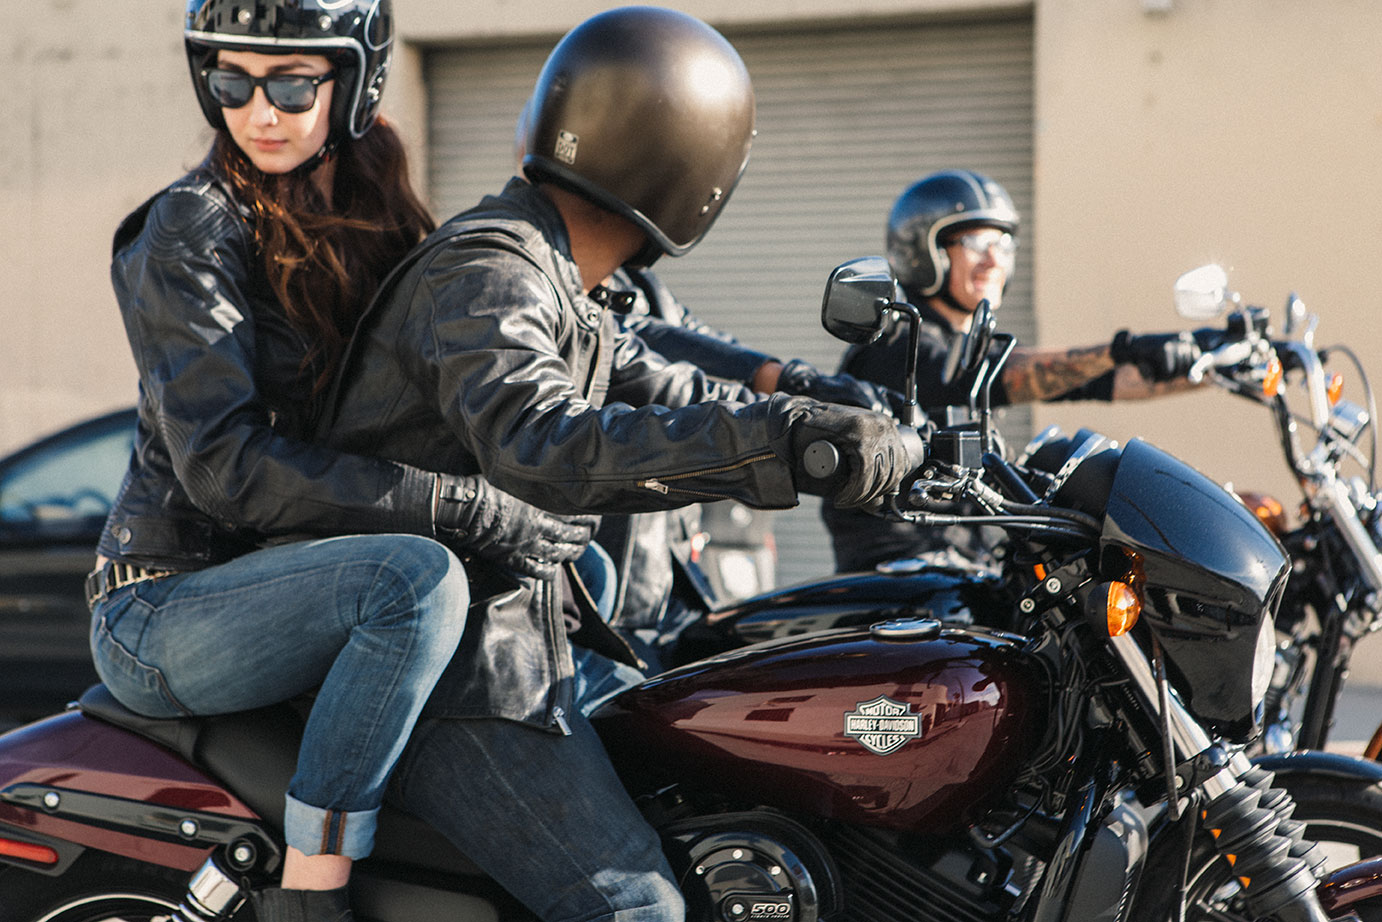 HARLEY_DAVIDSON_SHOT_10_RIDING_SHOT-0040